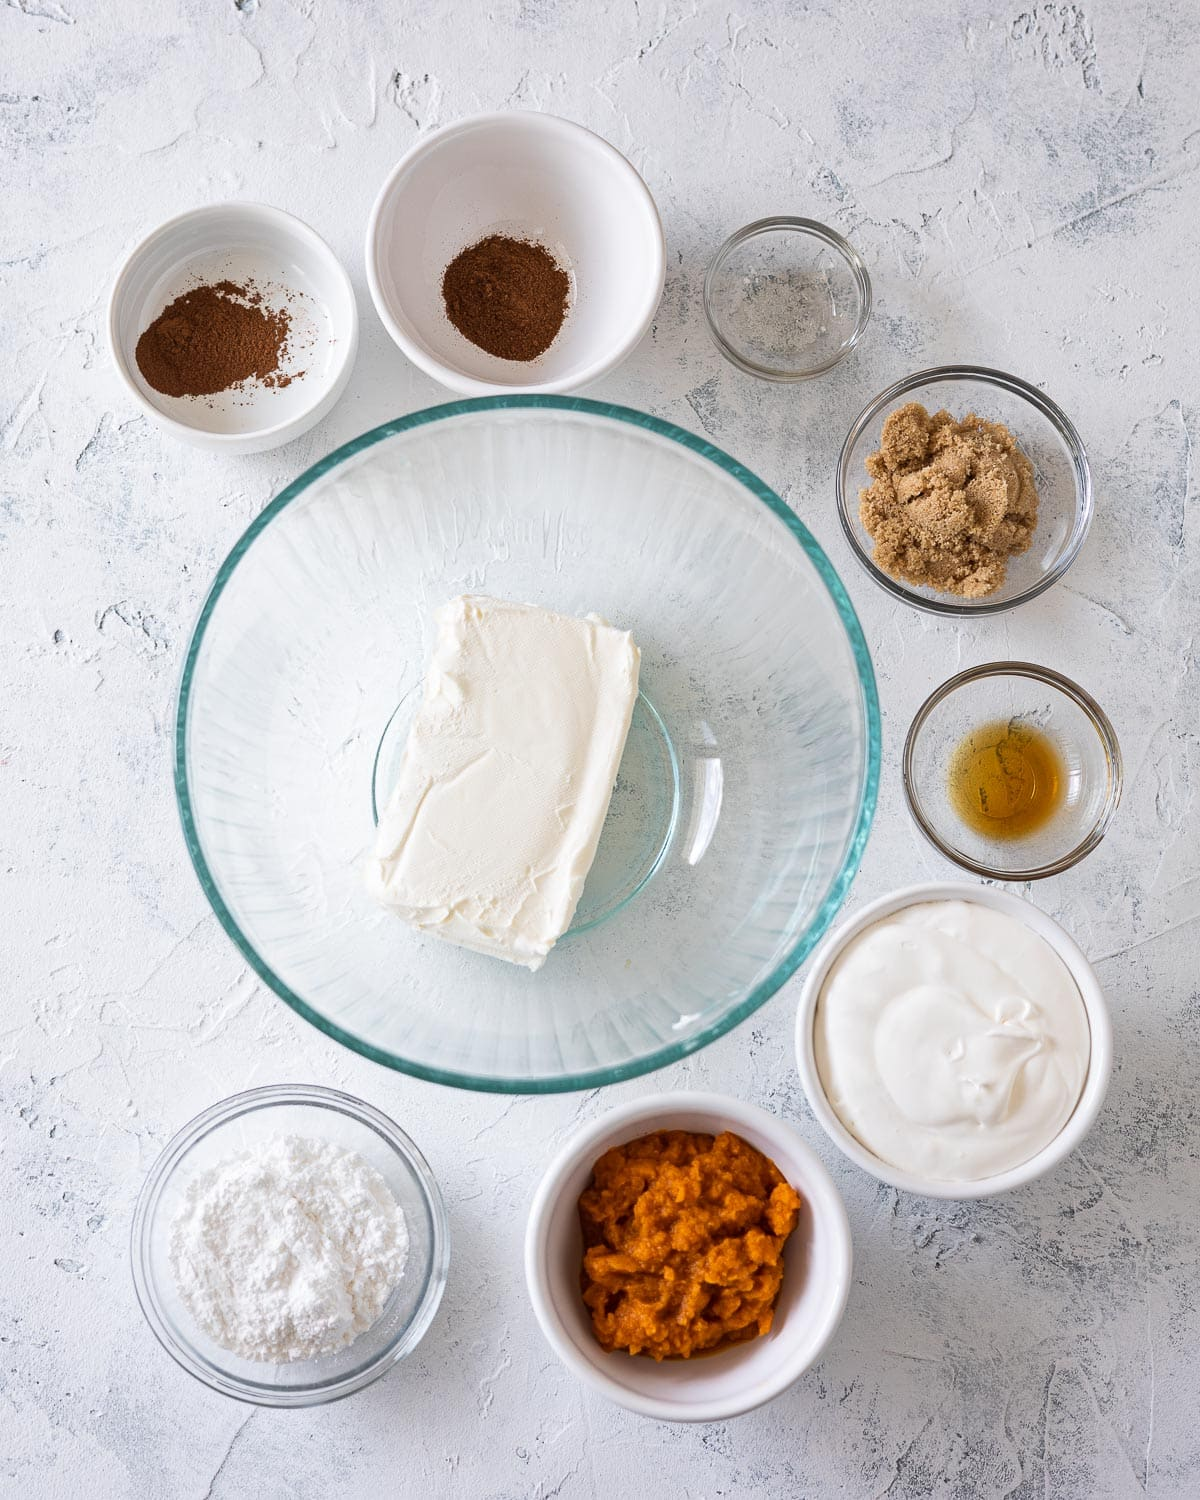 Ingredients for no bake pumpkin cheesecake in glass bowls: spices, sugars, cream cheese, pumpkin, whipped topping, salt, and vanilla.